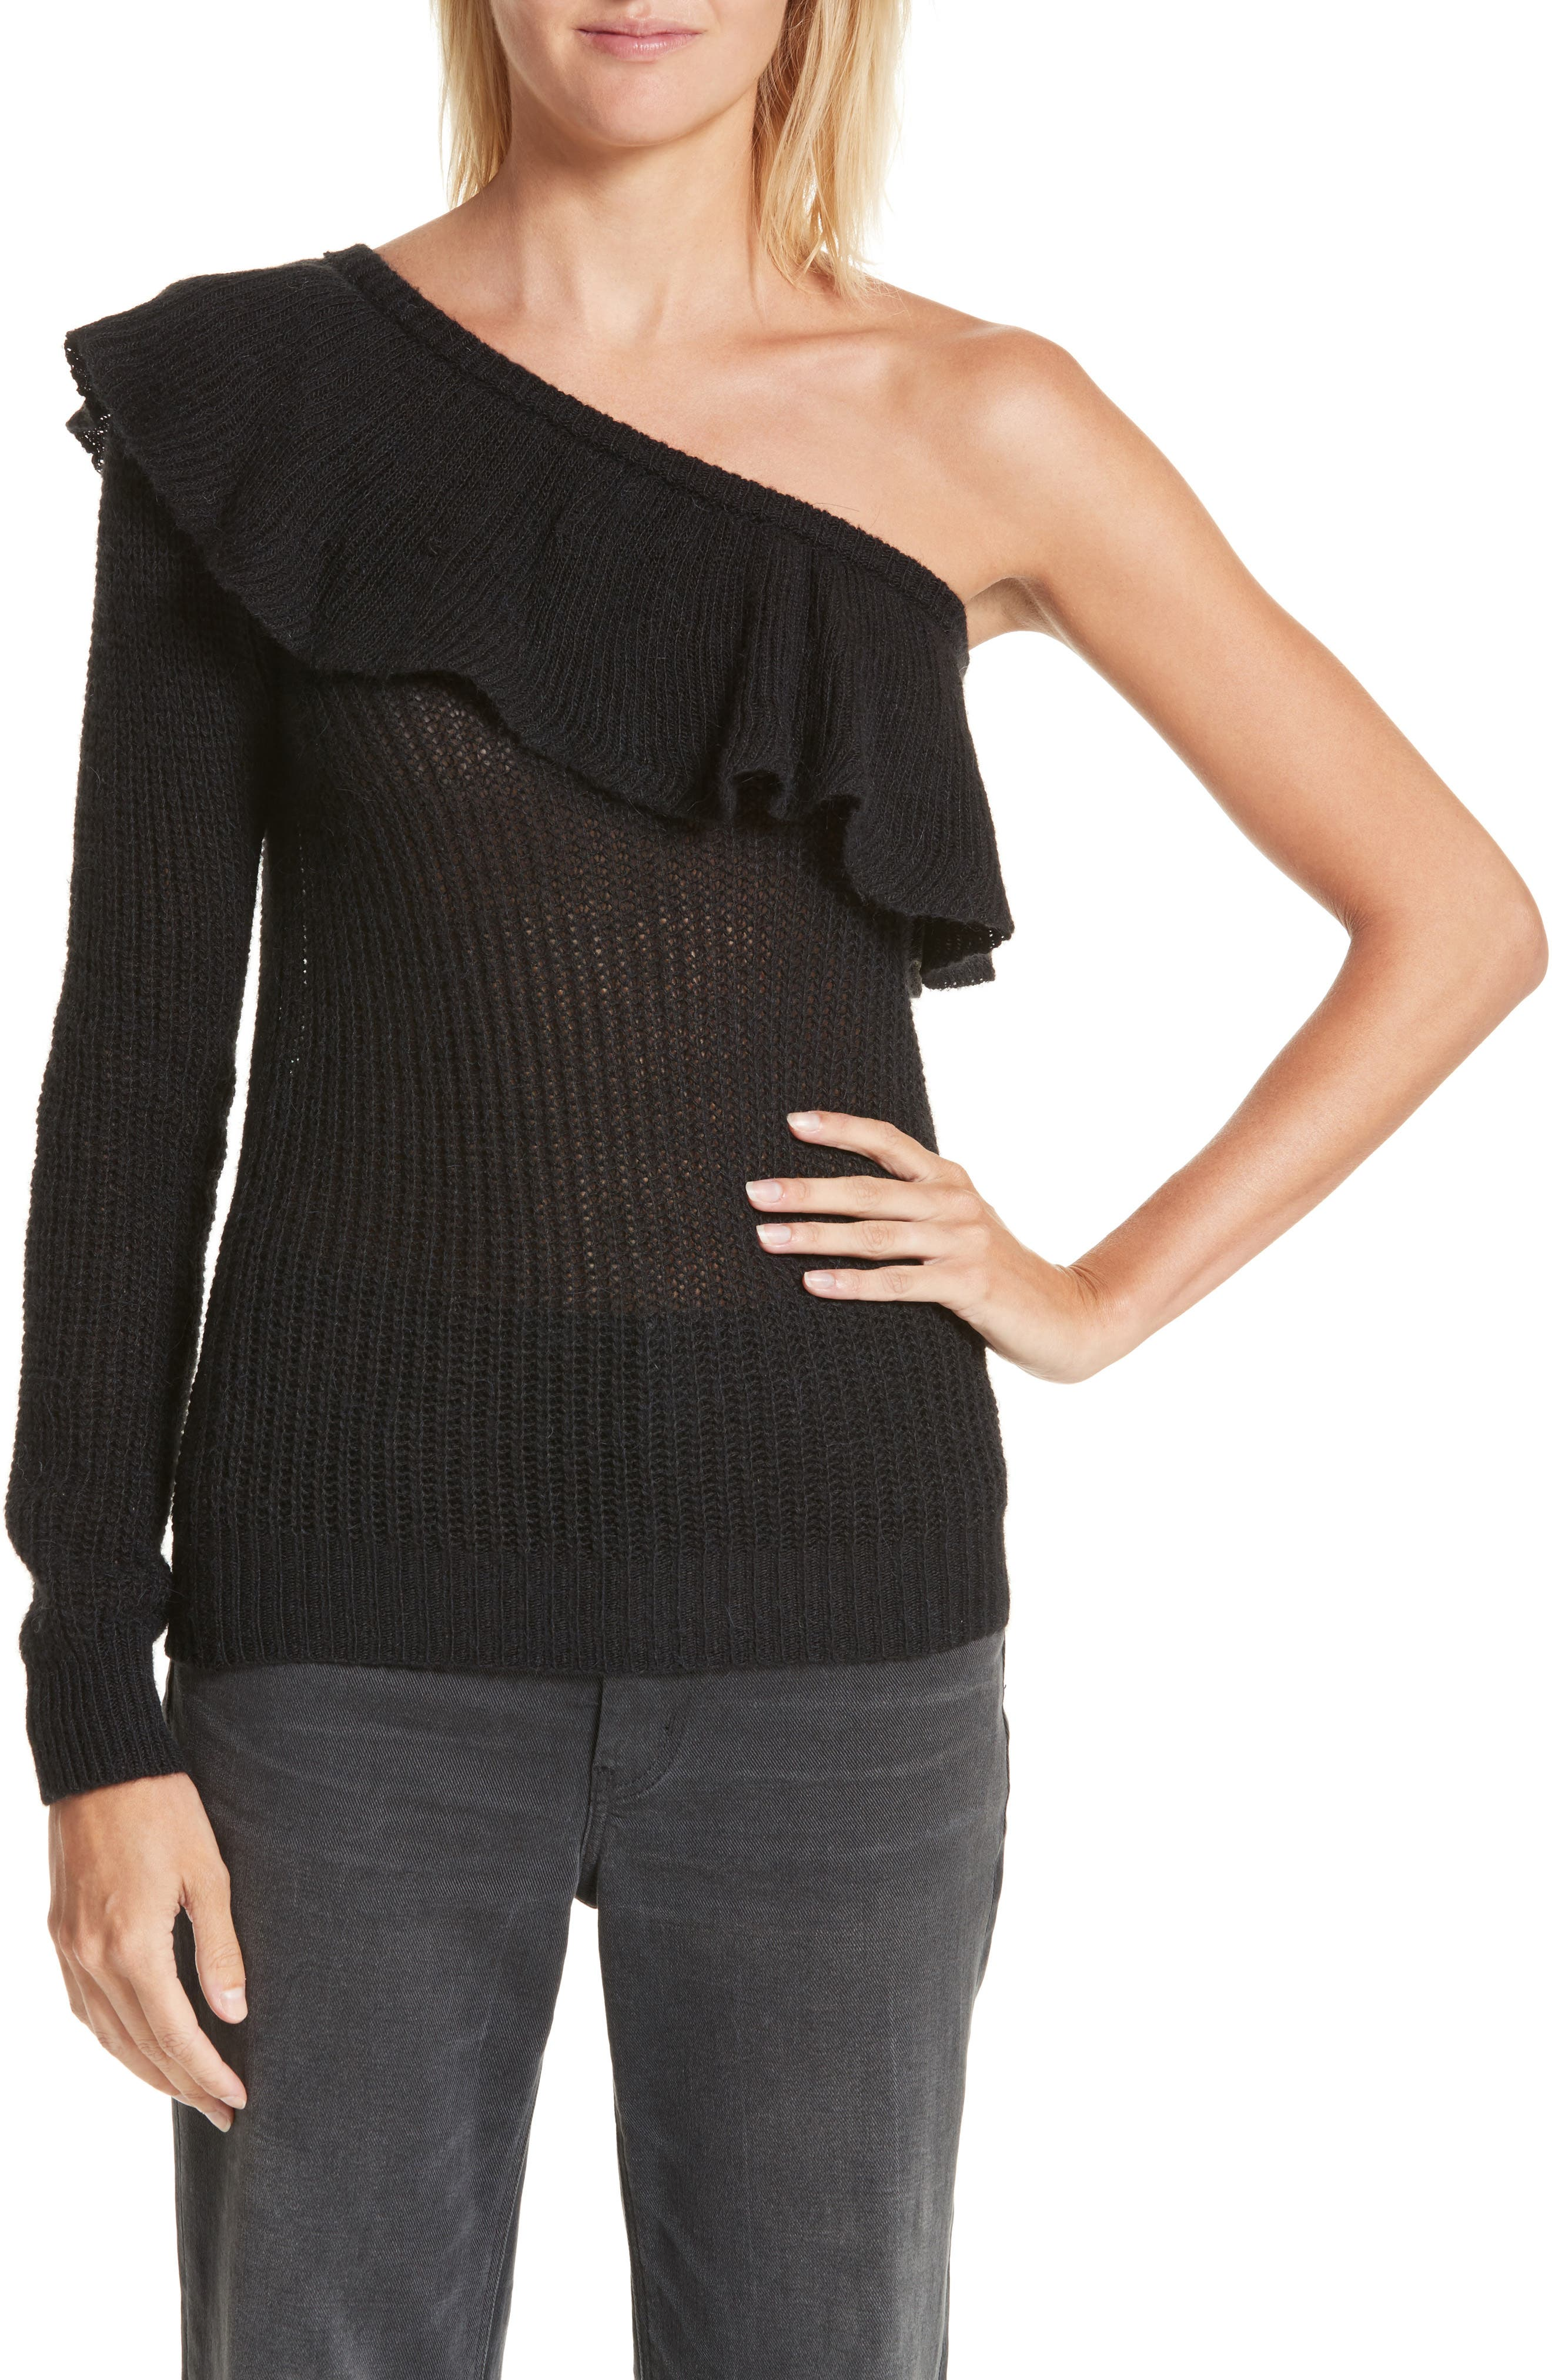 Alternate Image 1 Selected - Rebecca Taylor One-Shoulder Ruffle Sweater